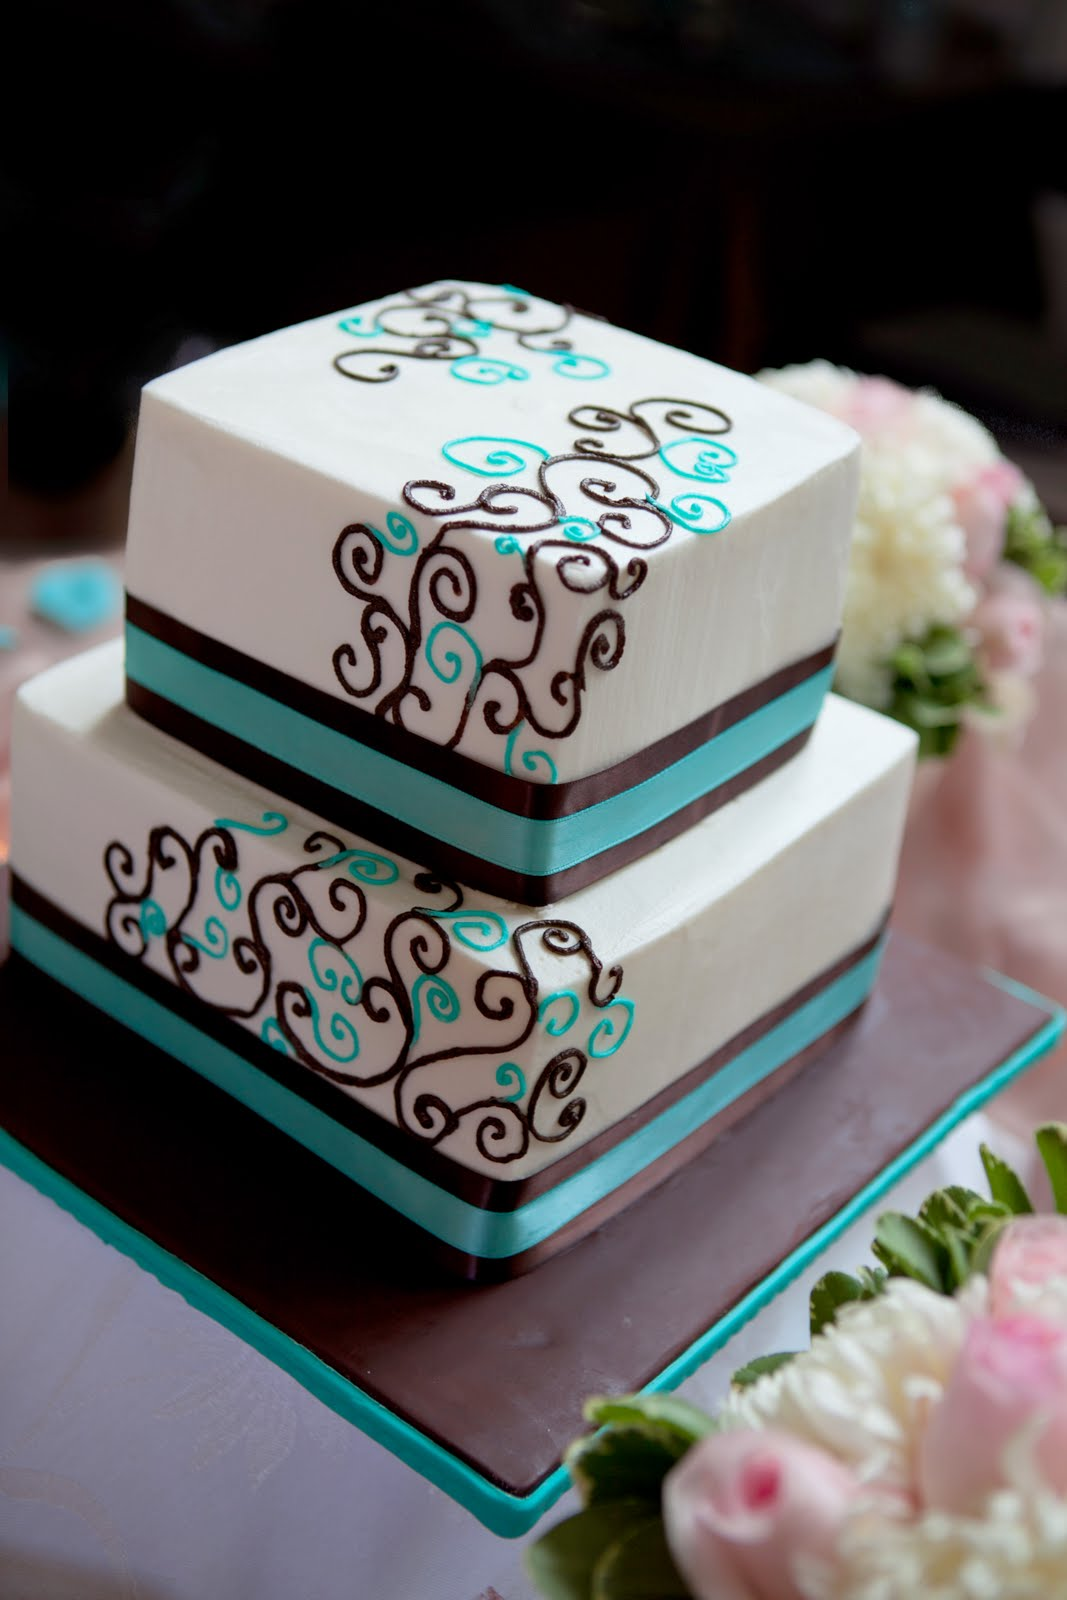 Birthday Cake Designs In Square :  Tis So Sweet Cakes